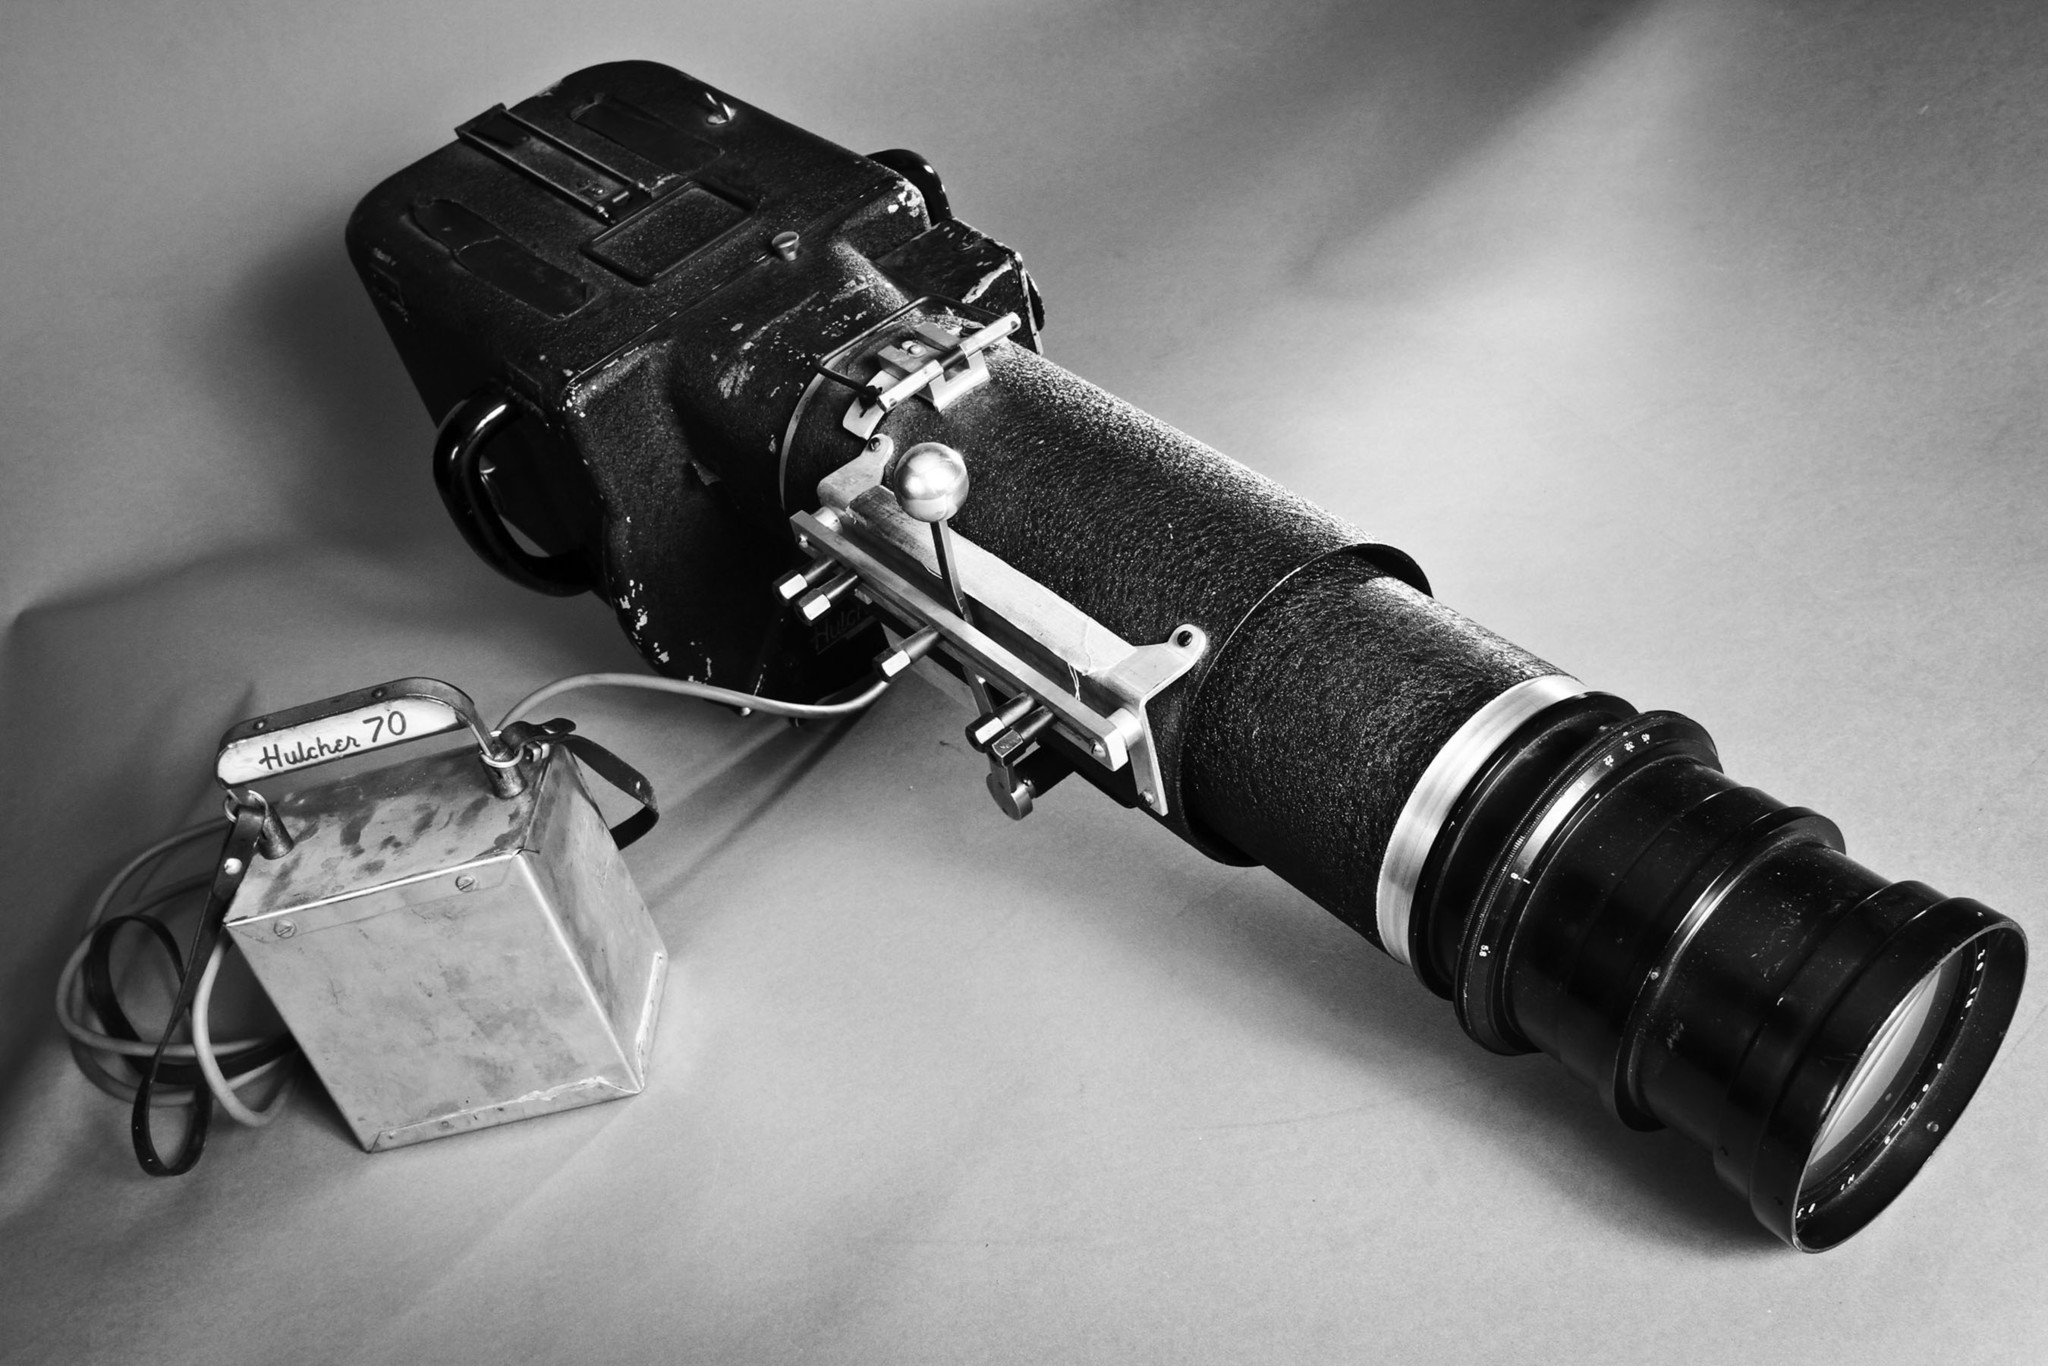 1950s era 70 mm Hulcher, a motorized, high-speed camera capable of taking a minimum of 20 frames per